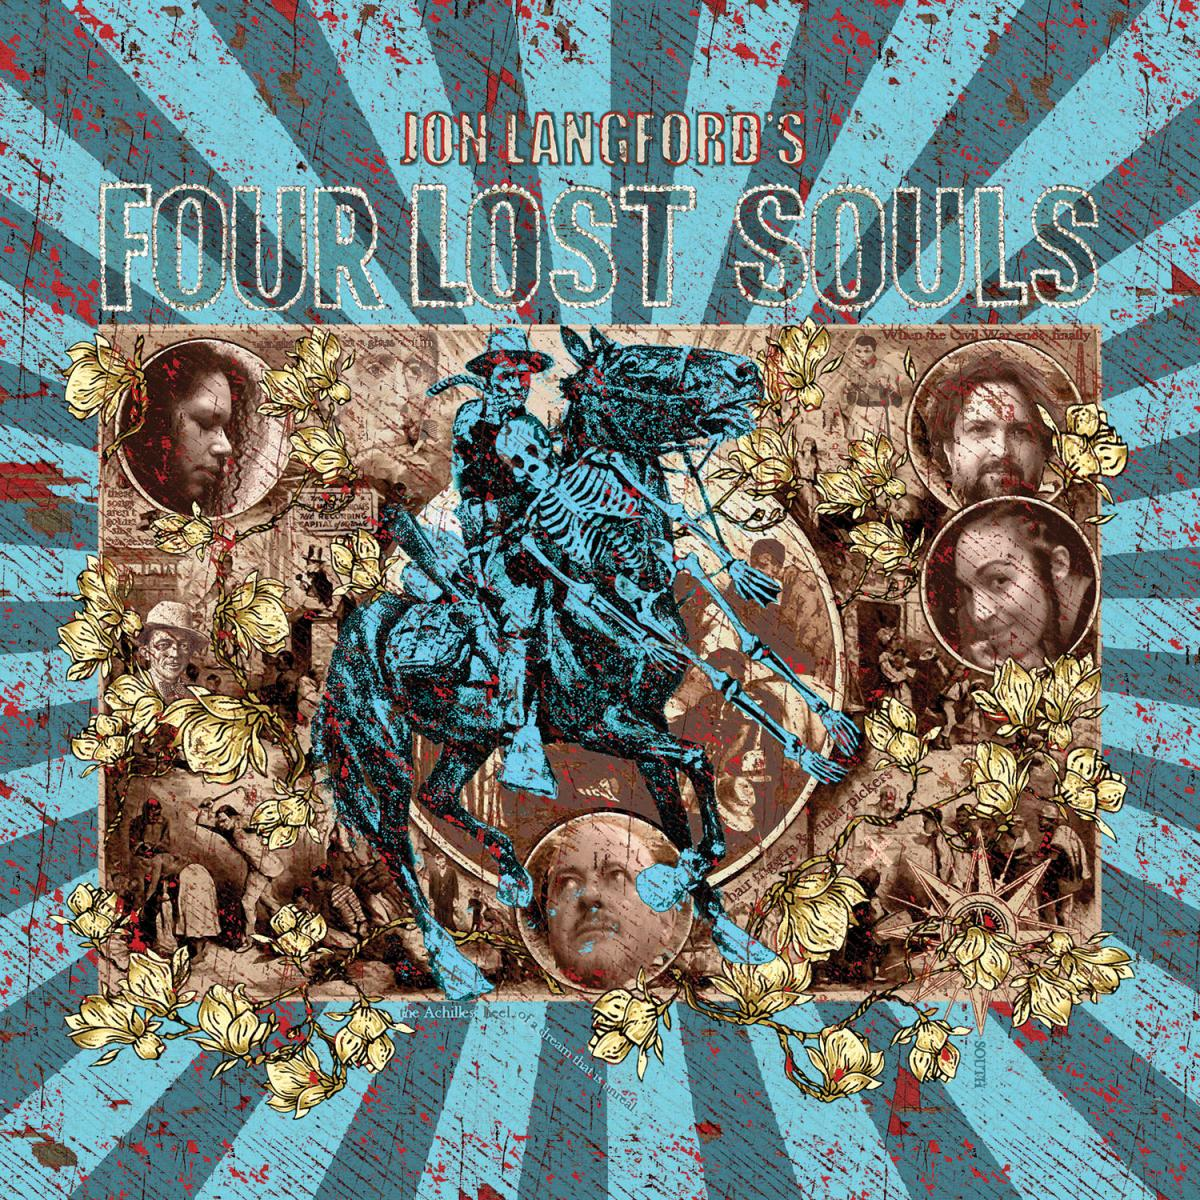 Jon Langford's Four Lost Souls Album art